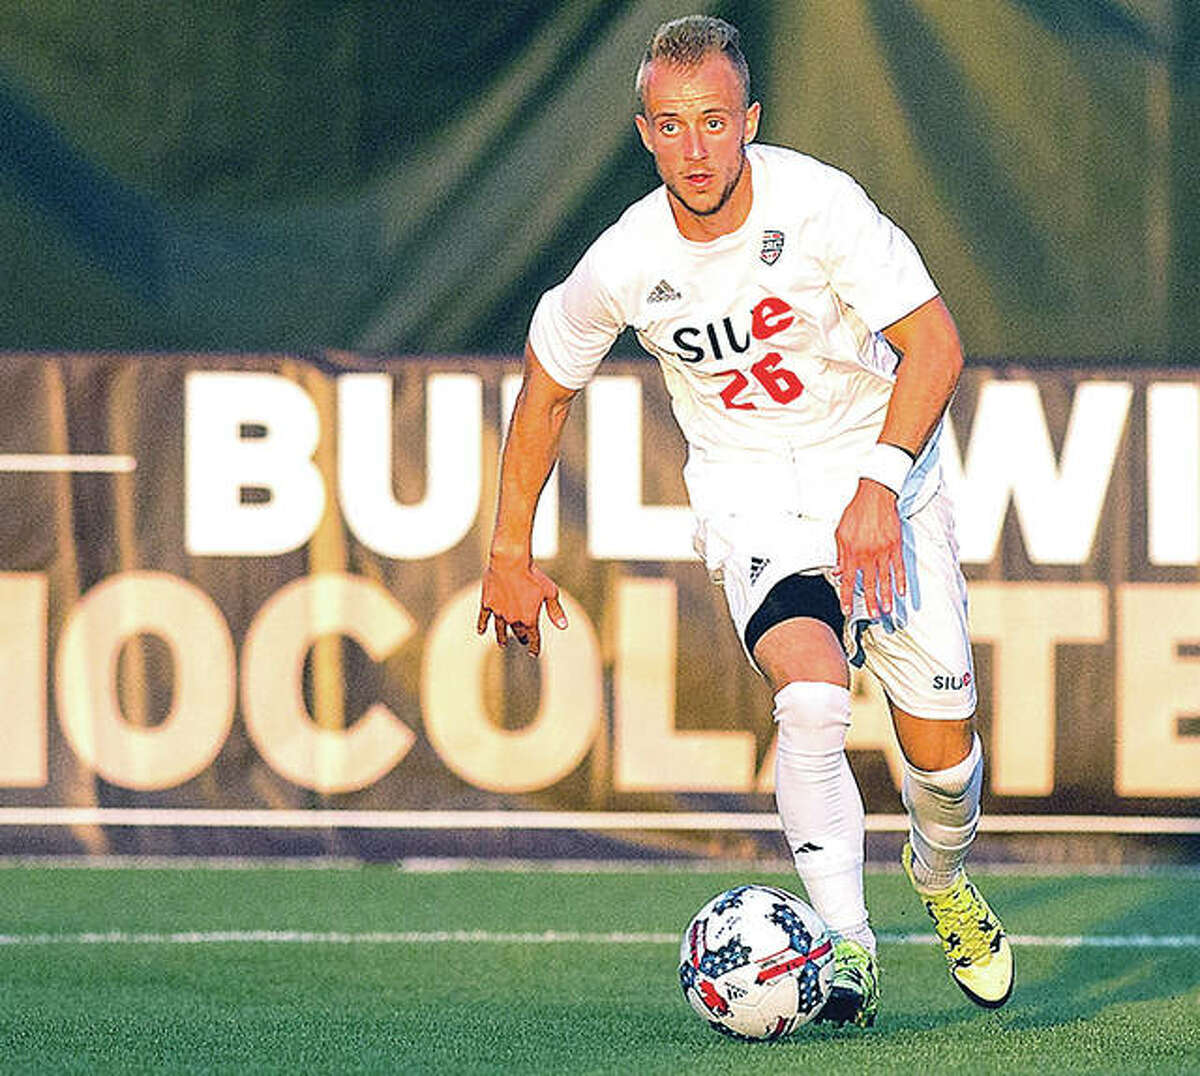 SIUE's Greg Solawa gave his team a 1-0 lead in Friday's MAC Tournament semifinal, but No. 7 Akron tied the the game with 15 seconds left in regulation and then scored in the second OT to grab a 2-1 victory.